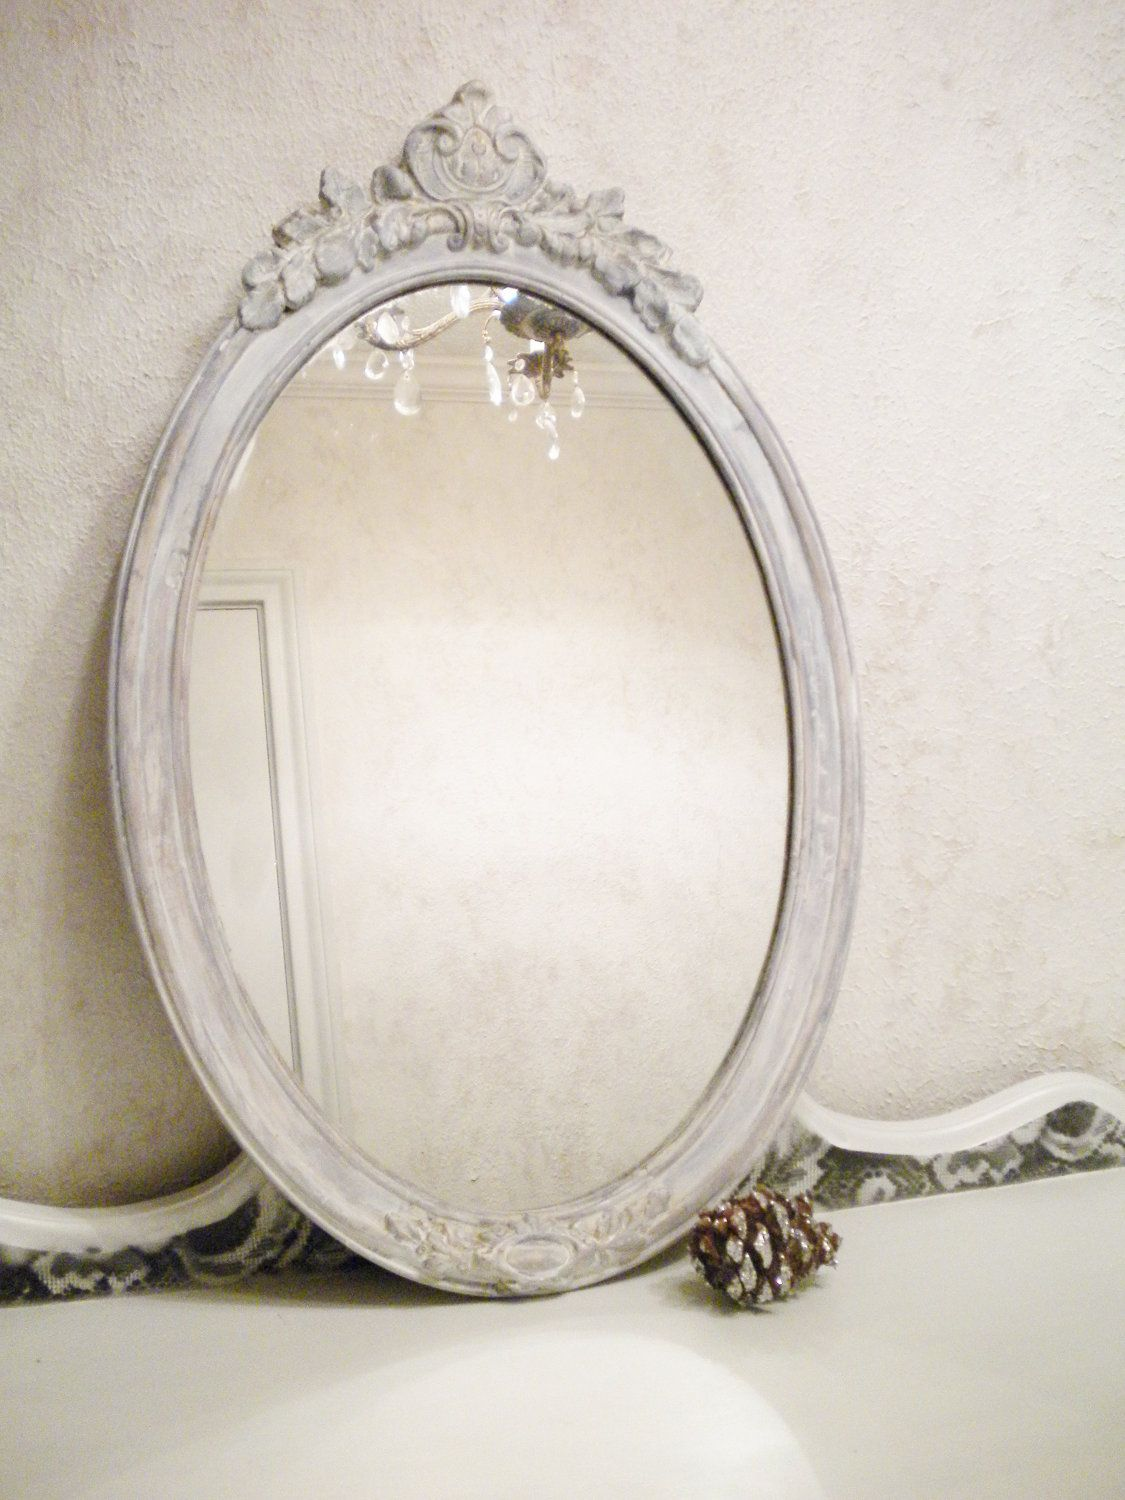 Chic Vintage Mirror Large Wood Shabby Vanity Cottage Style With Lovely Scroll Work 59 00 Via Etsy